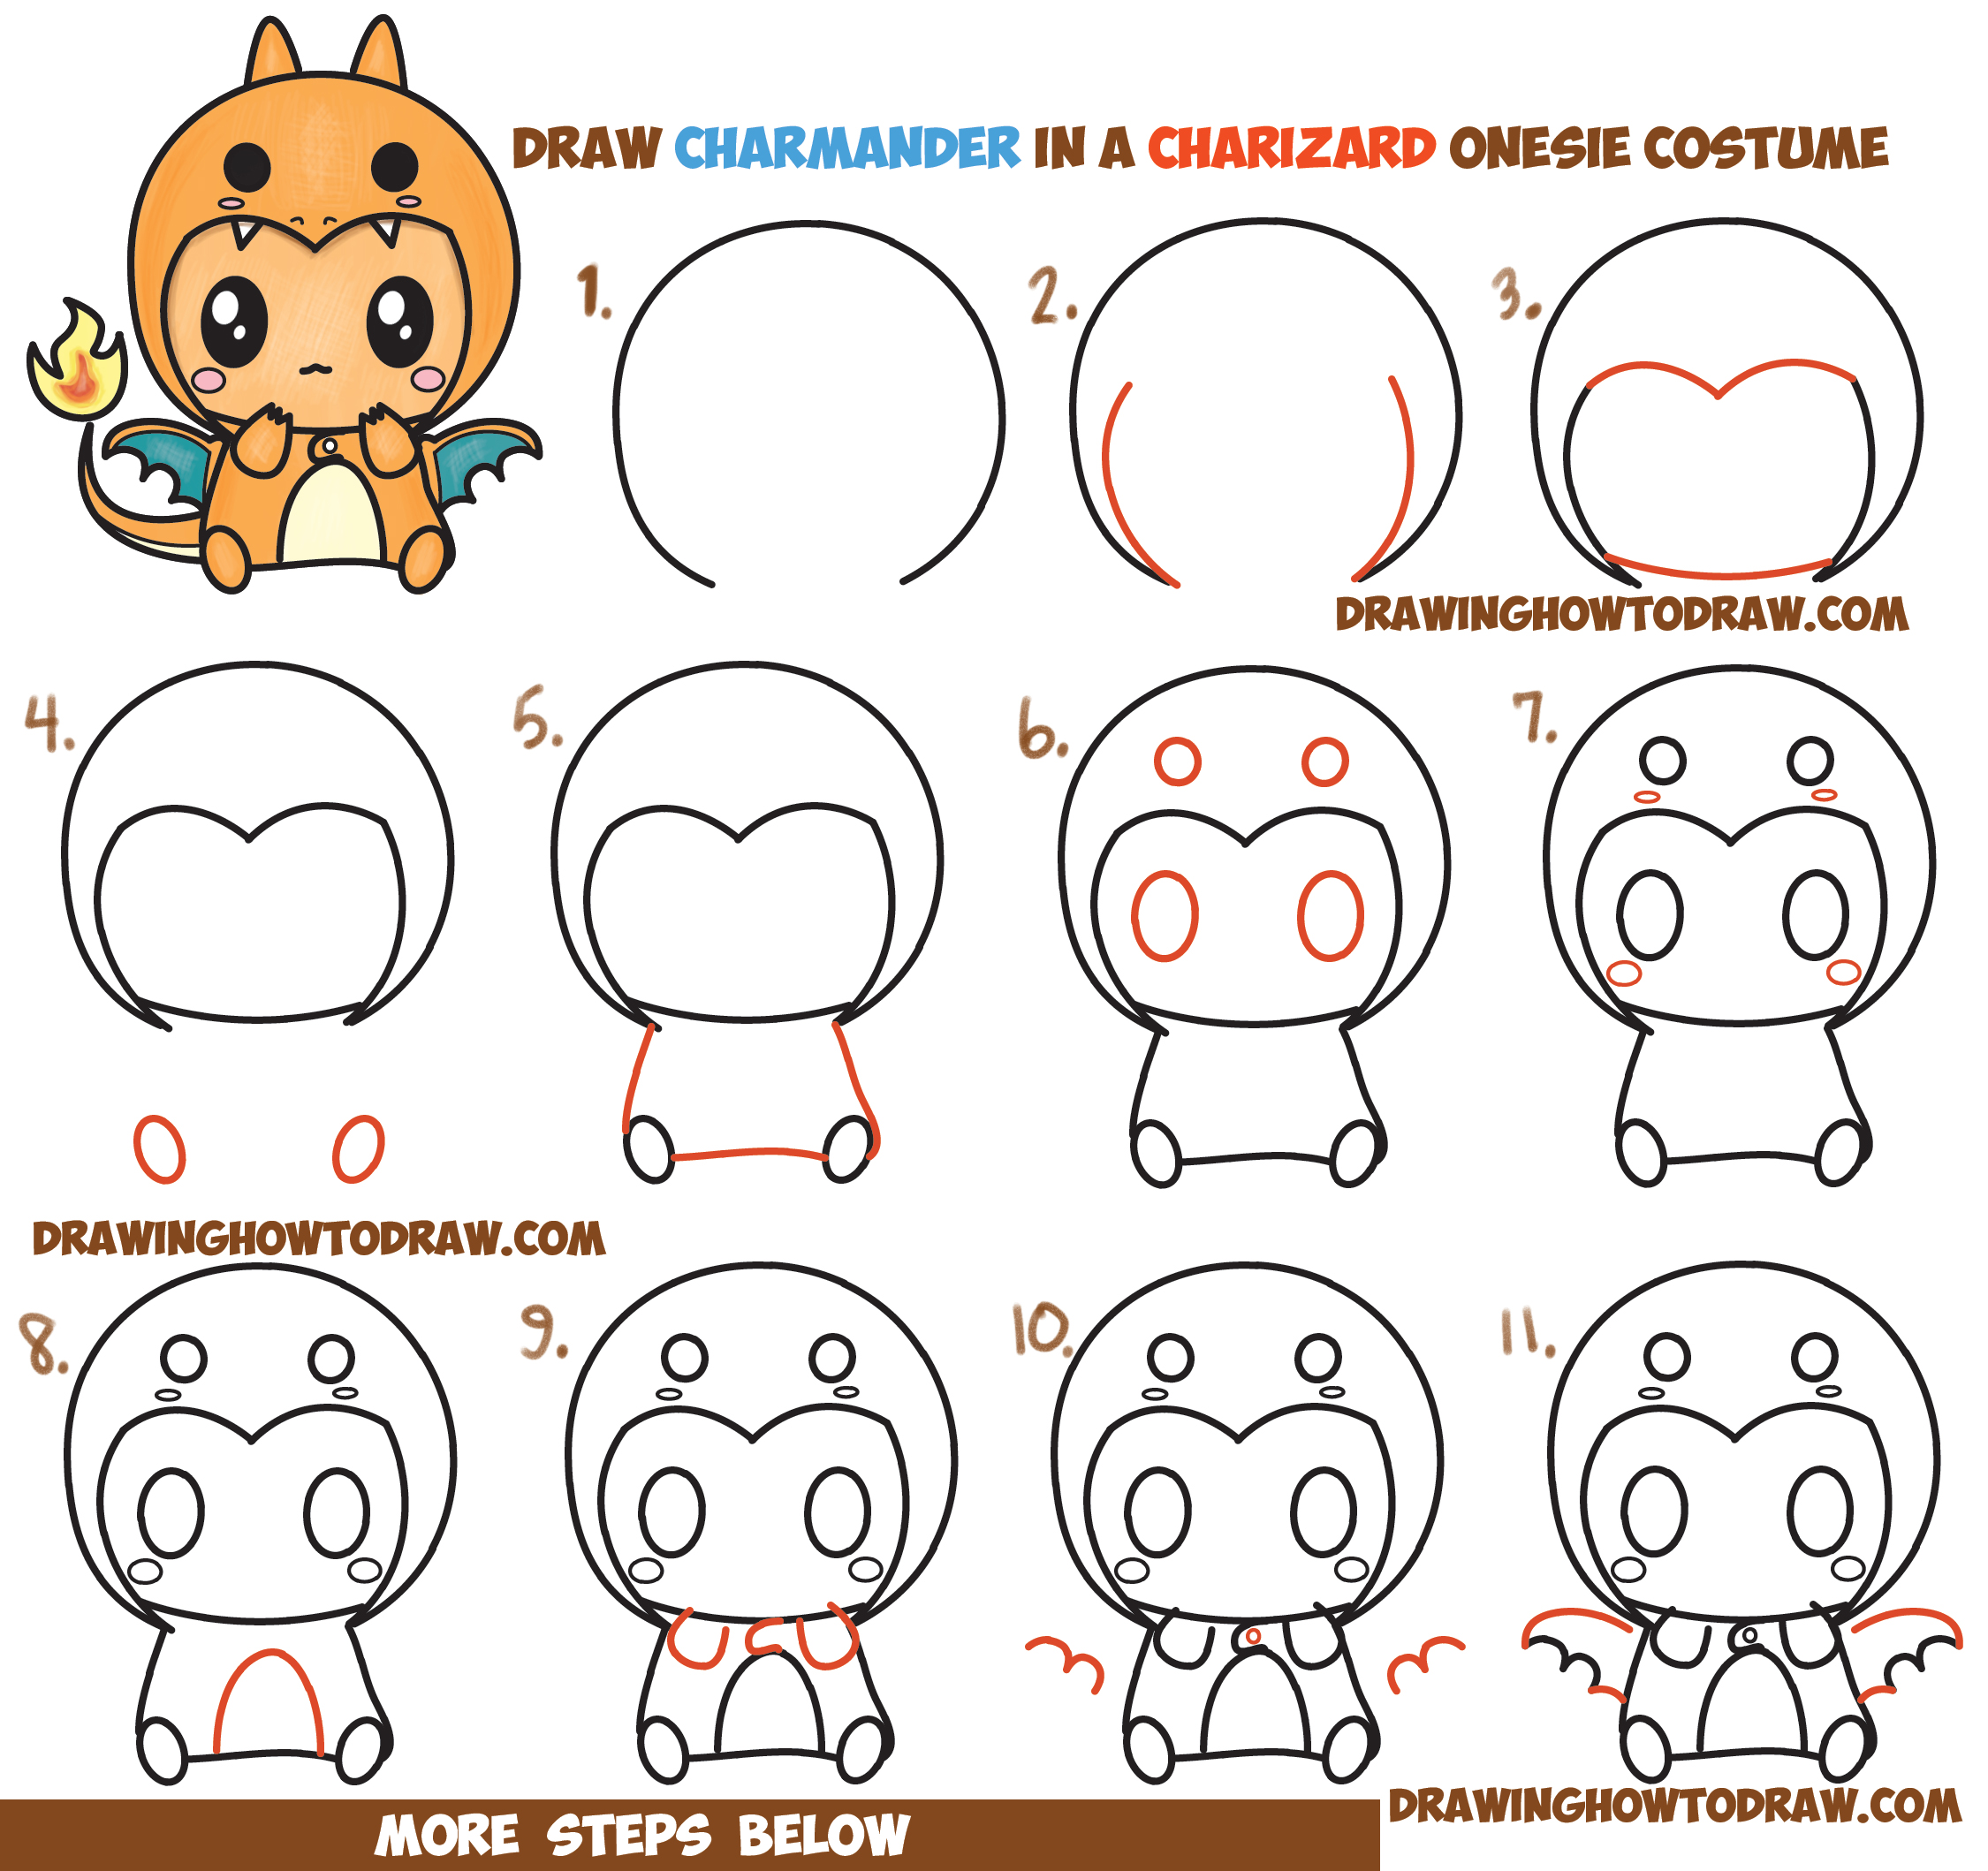 er diagram tutorial for beginners xlr to 1 4 mono wiring how draw charmander wearing a charizard costume onesie